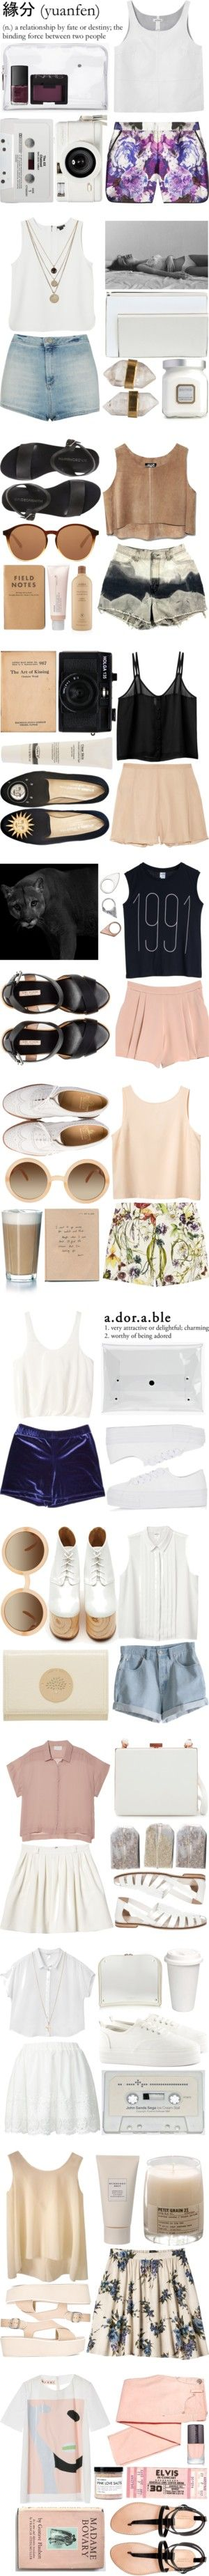 """for holidays"" by evgenia-trofimova ❤ liked on Polyvore"